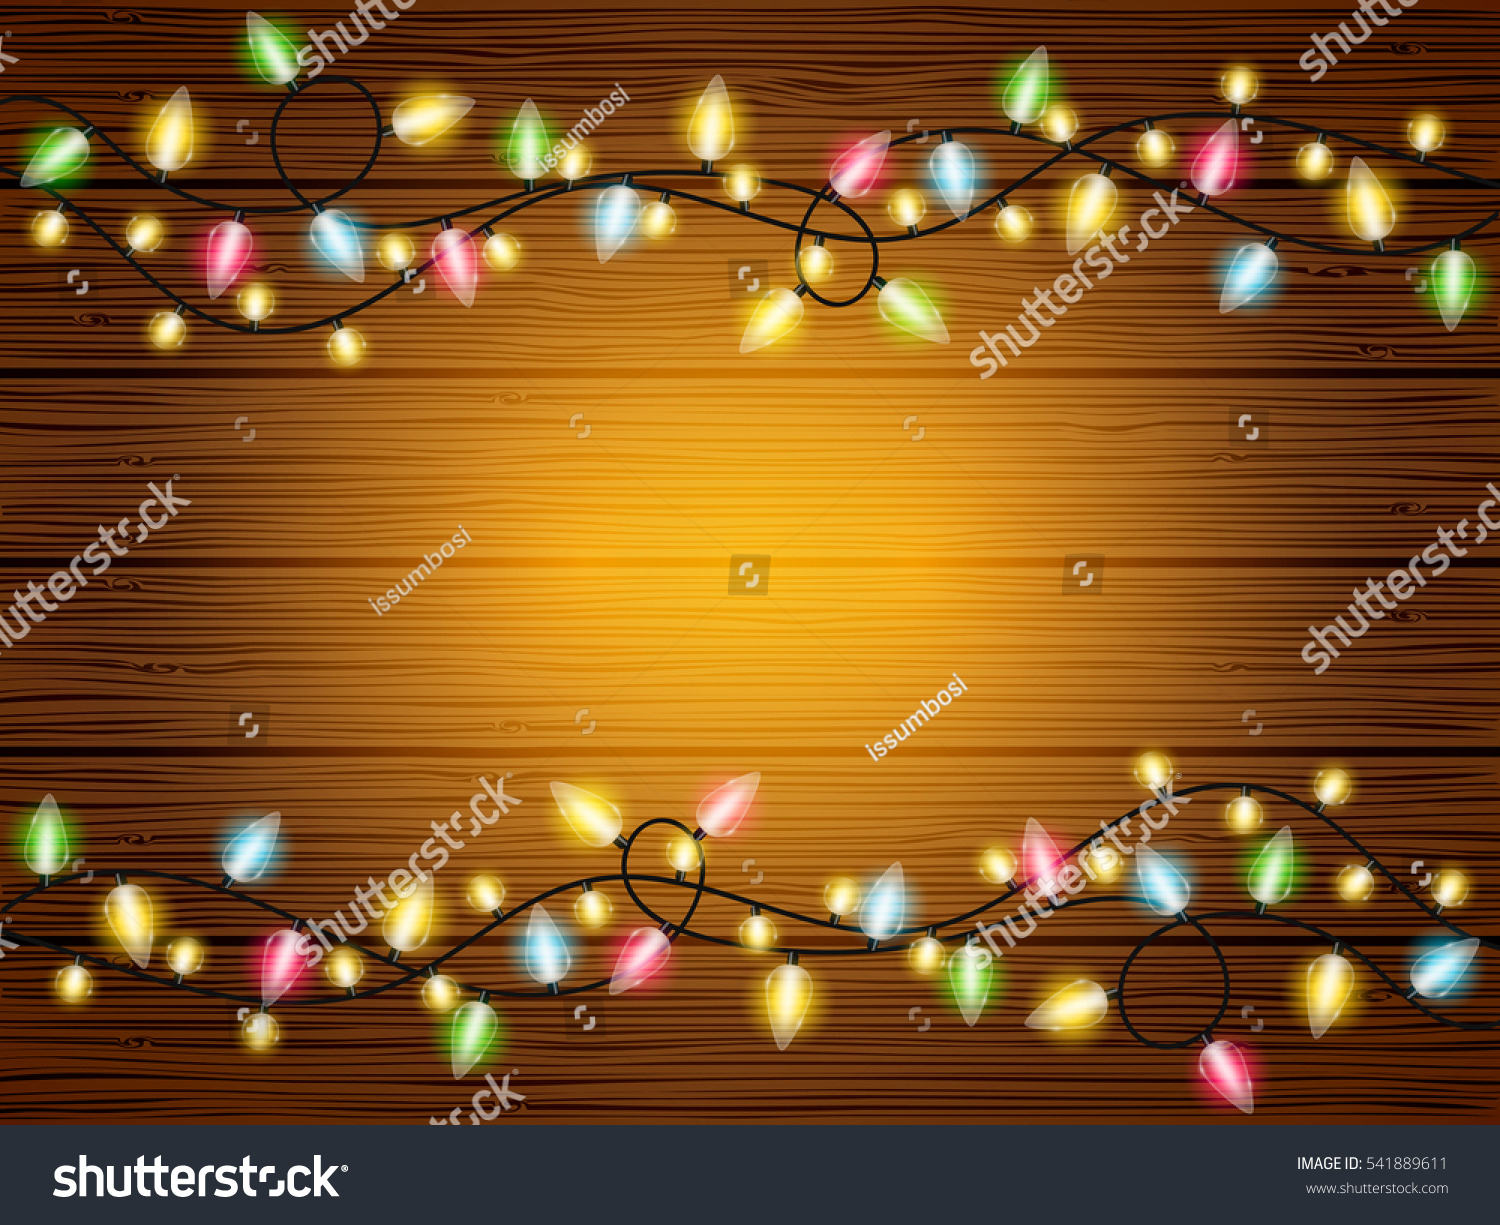 Amazing Wallpaper Christmas Wood - stock-vector-vector-holiday-wood-texture-wallpaper-background-with-colorful-light-chains-541889611  Graphic_515443 .jpg